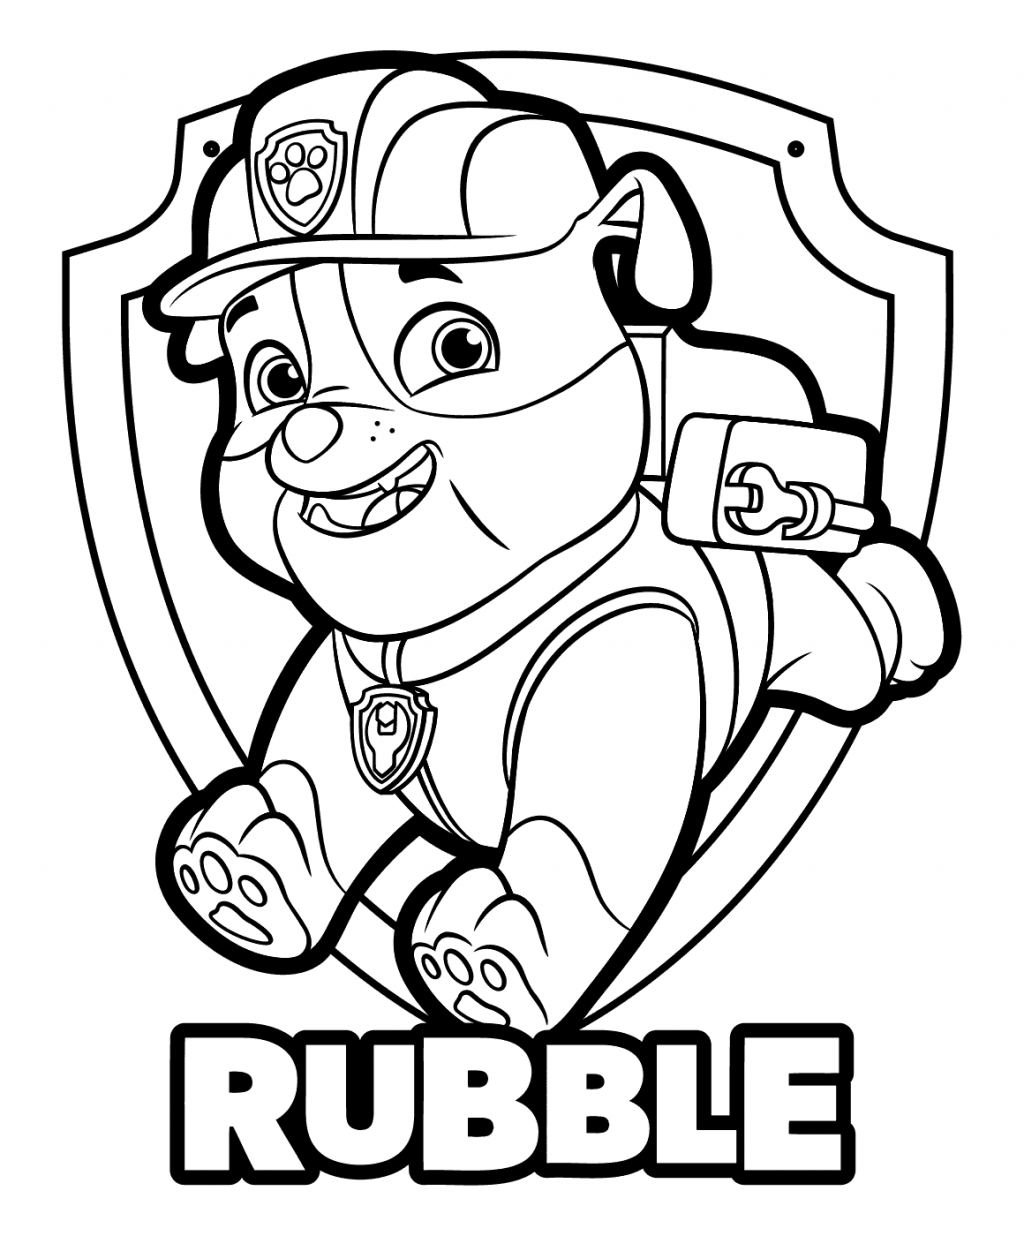 rubble paw patrol 15 best paw patrol coloring pages visual arts ideas patrol rubble paw